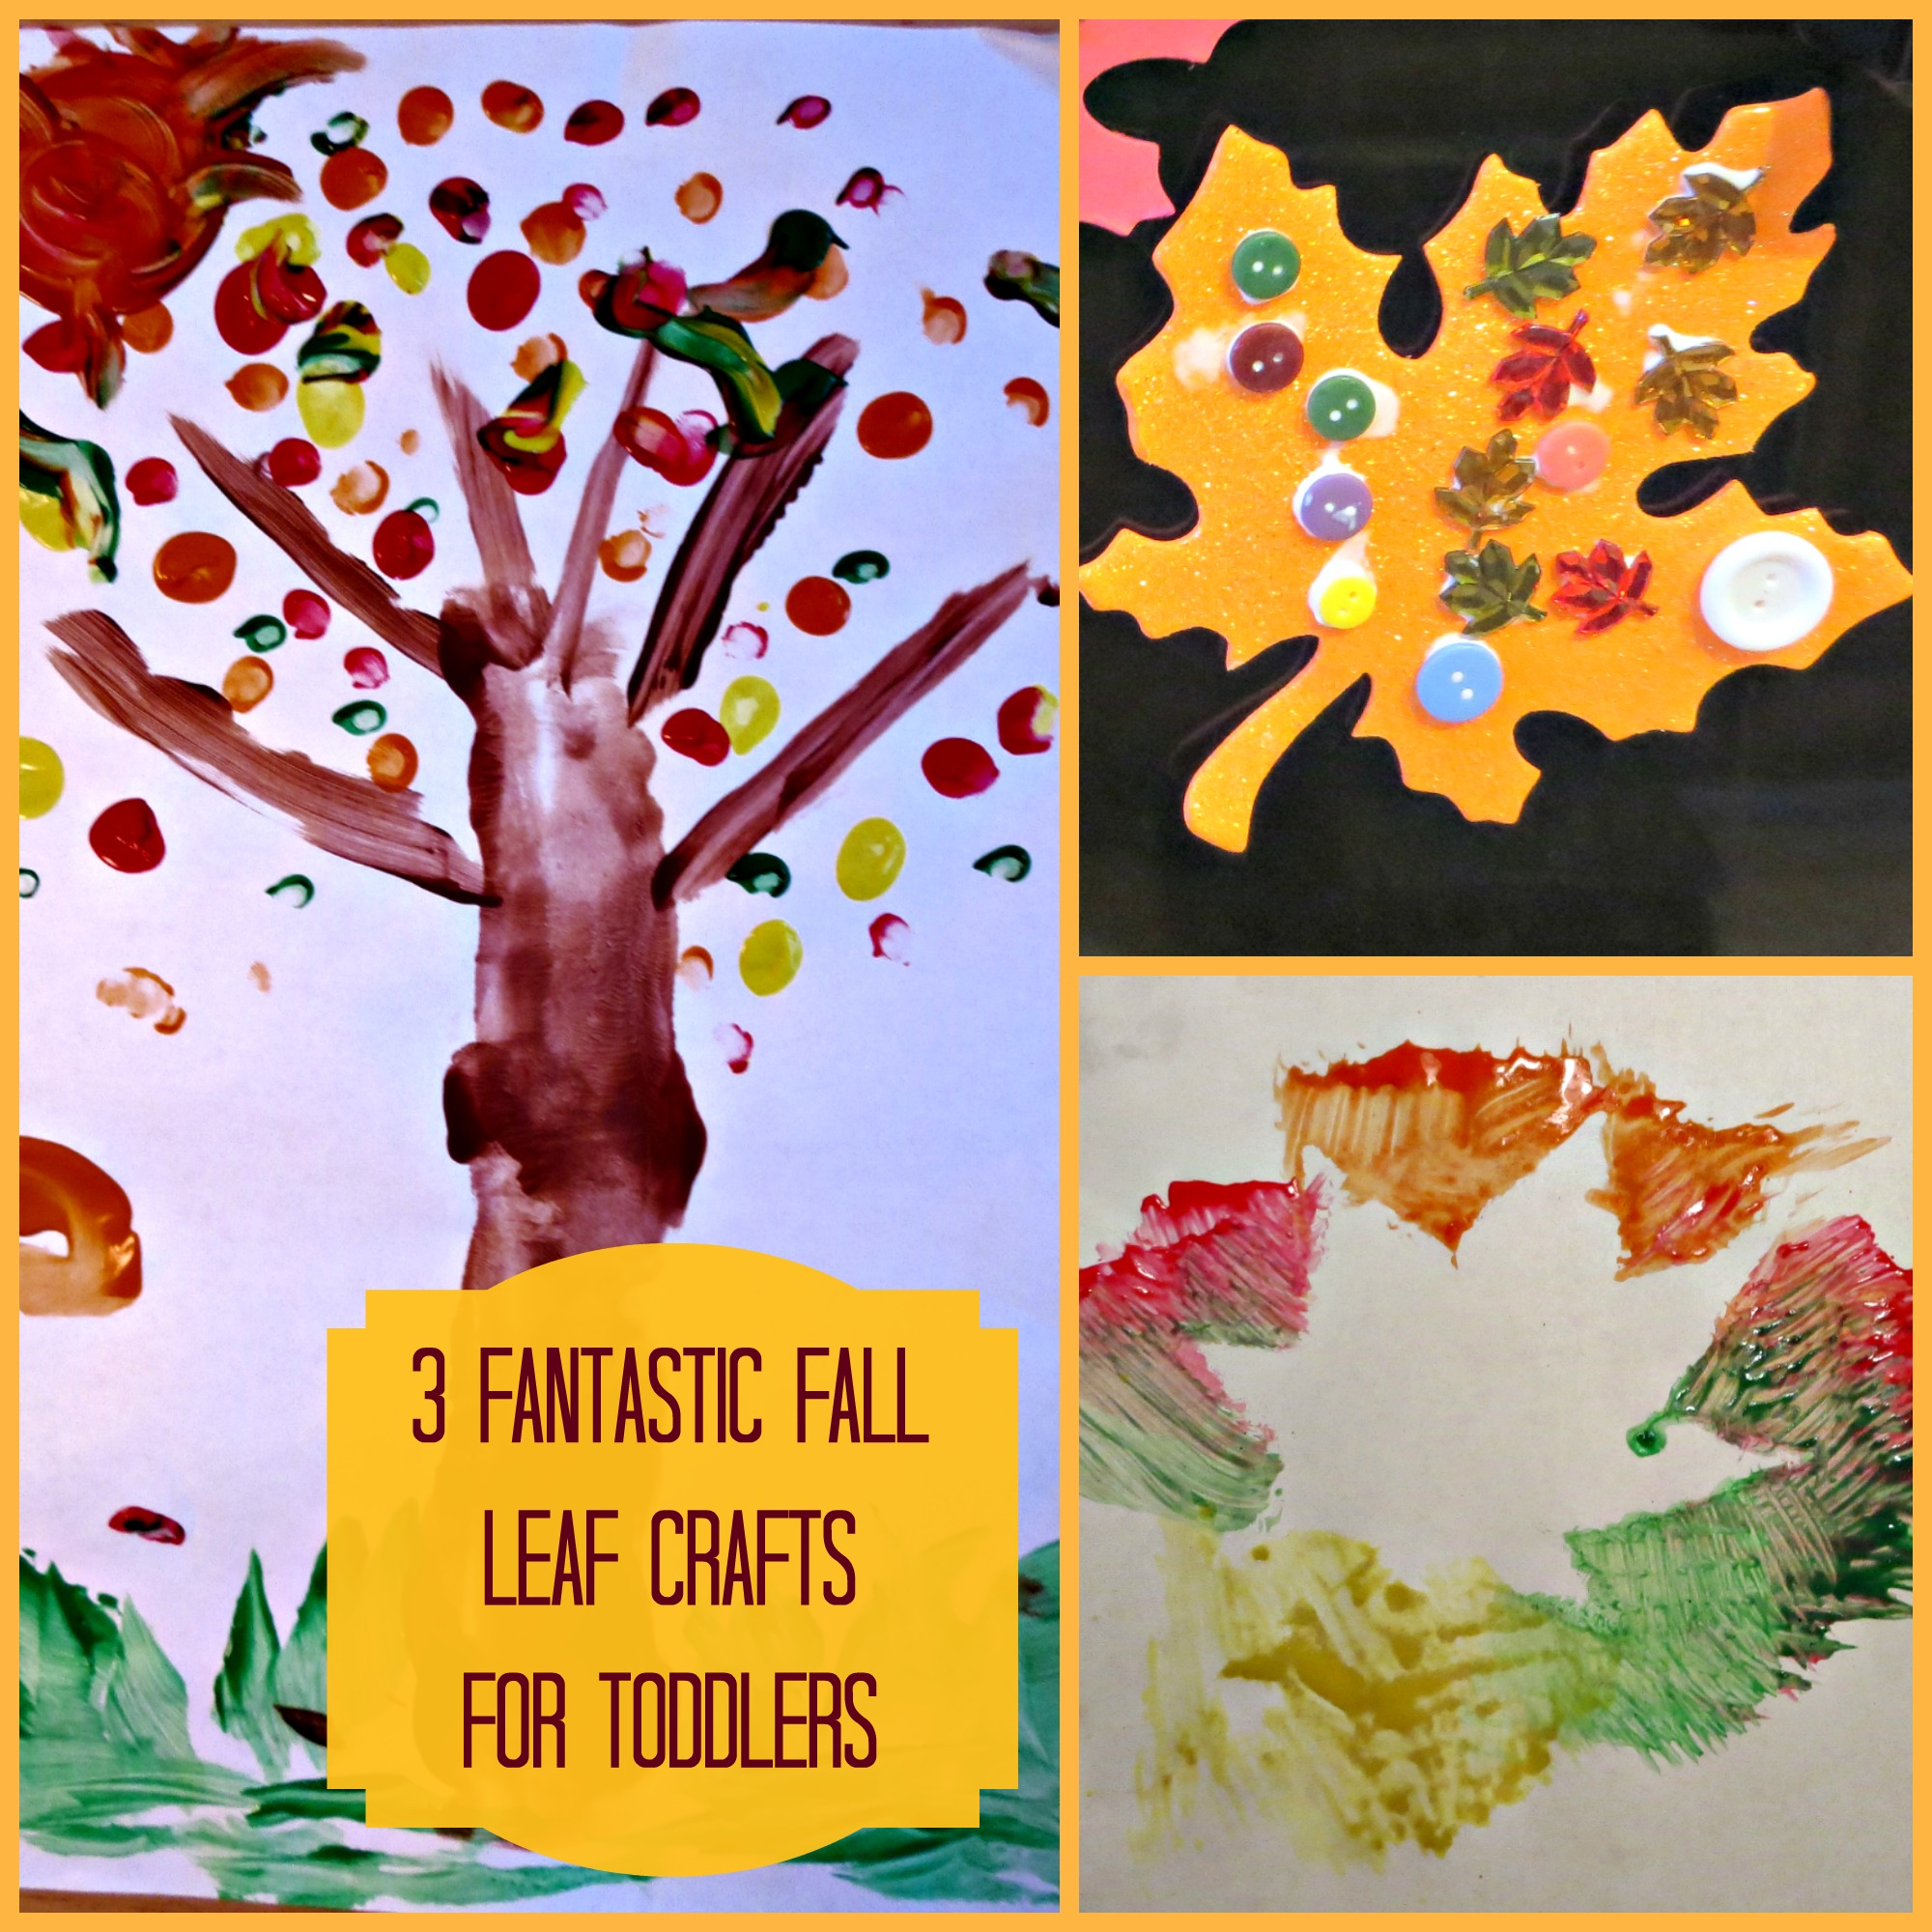 3 Fantastic Fall Leaf Crafts For Toddlers